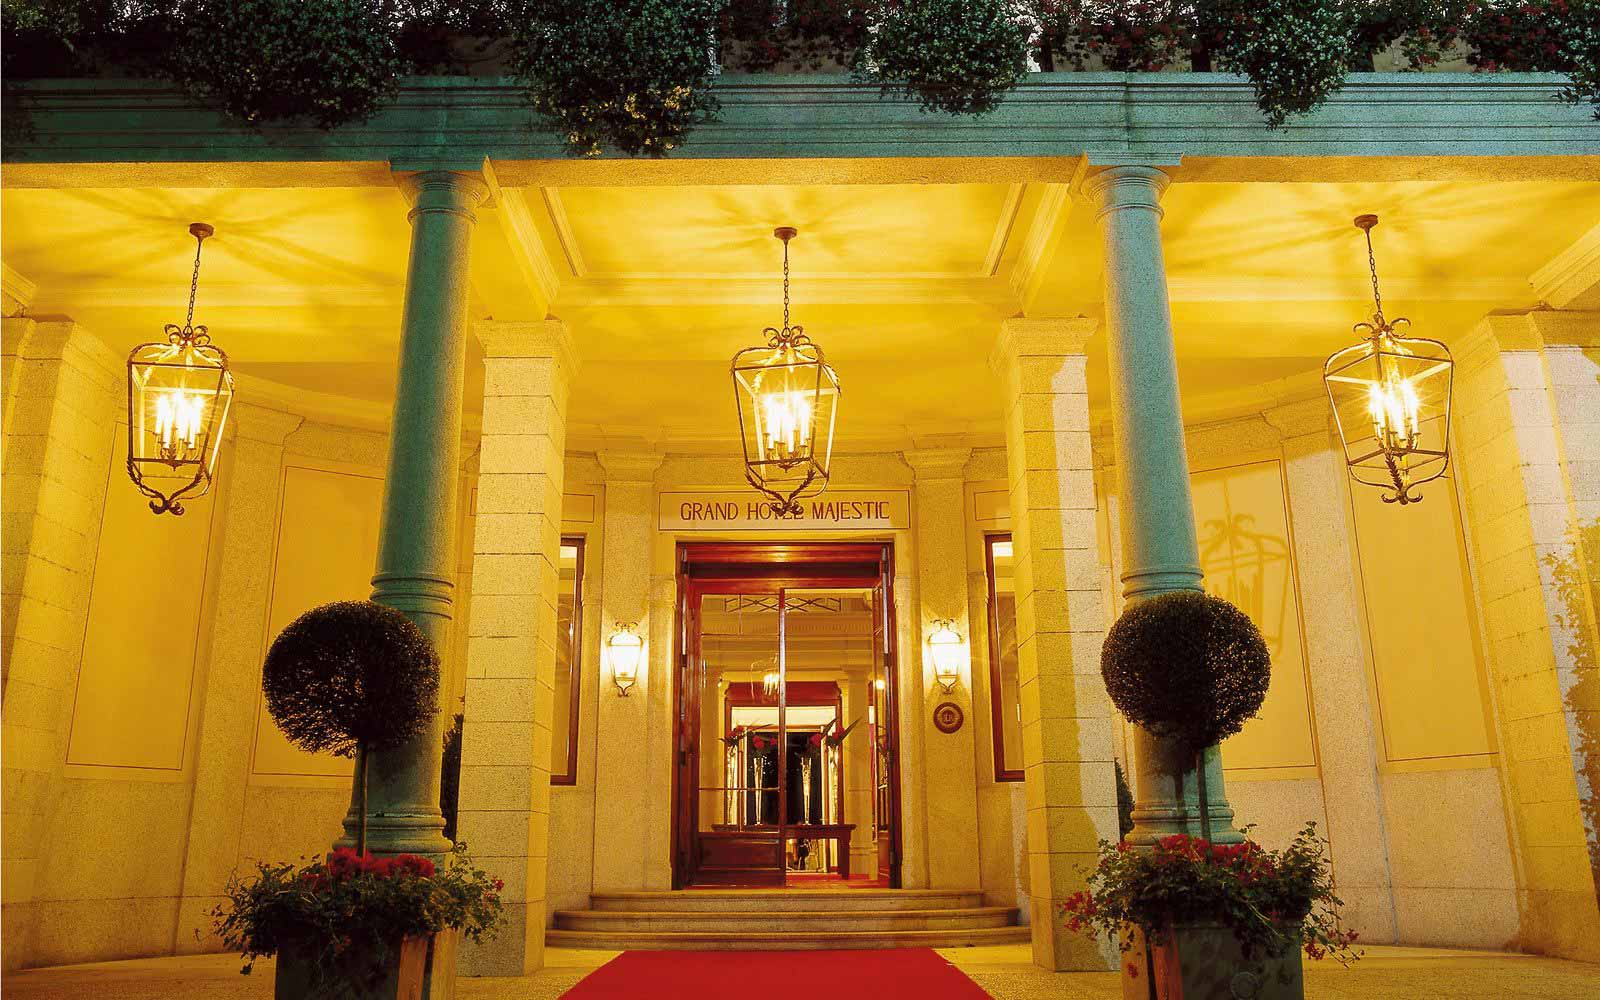 Maine entrance at Grand Hotel Majestic